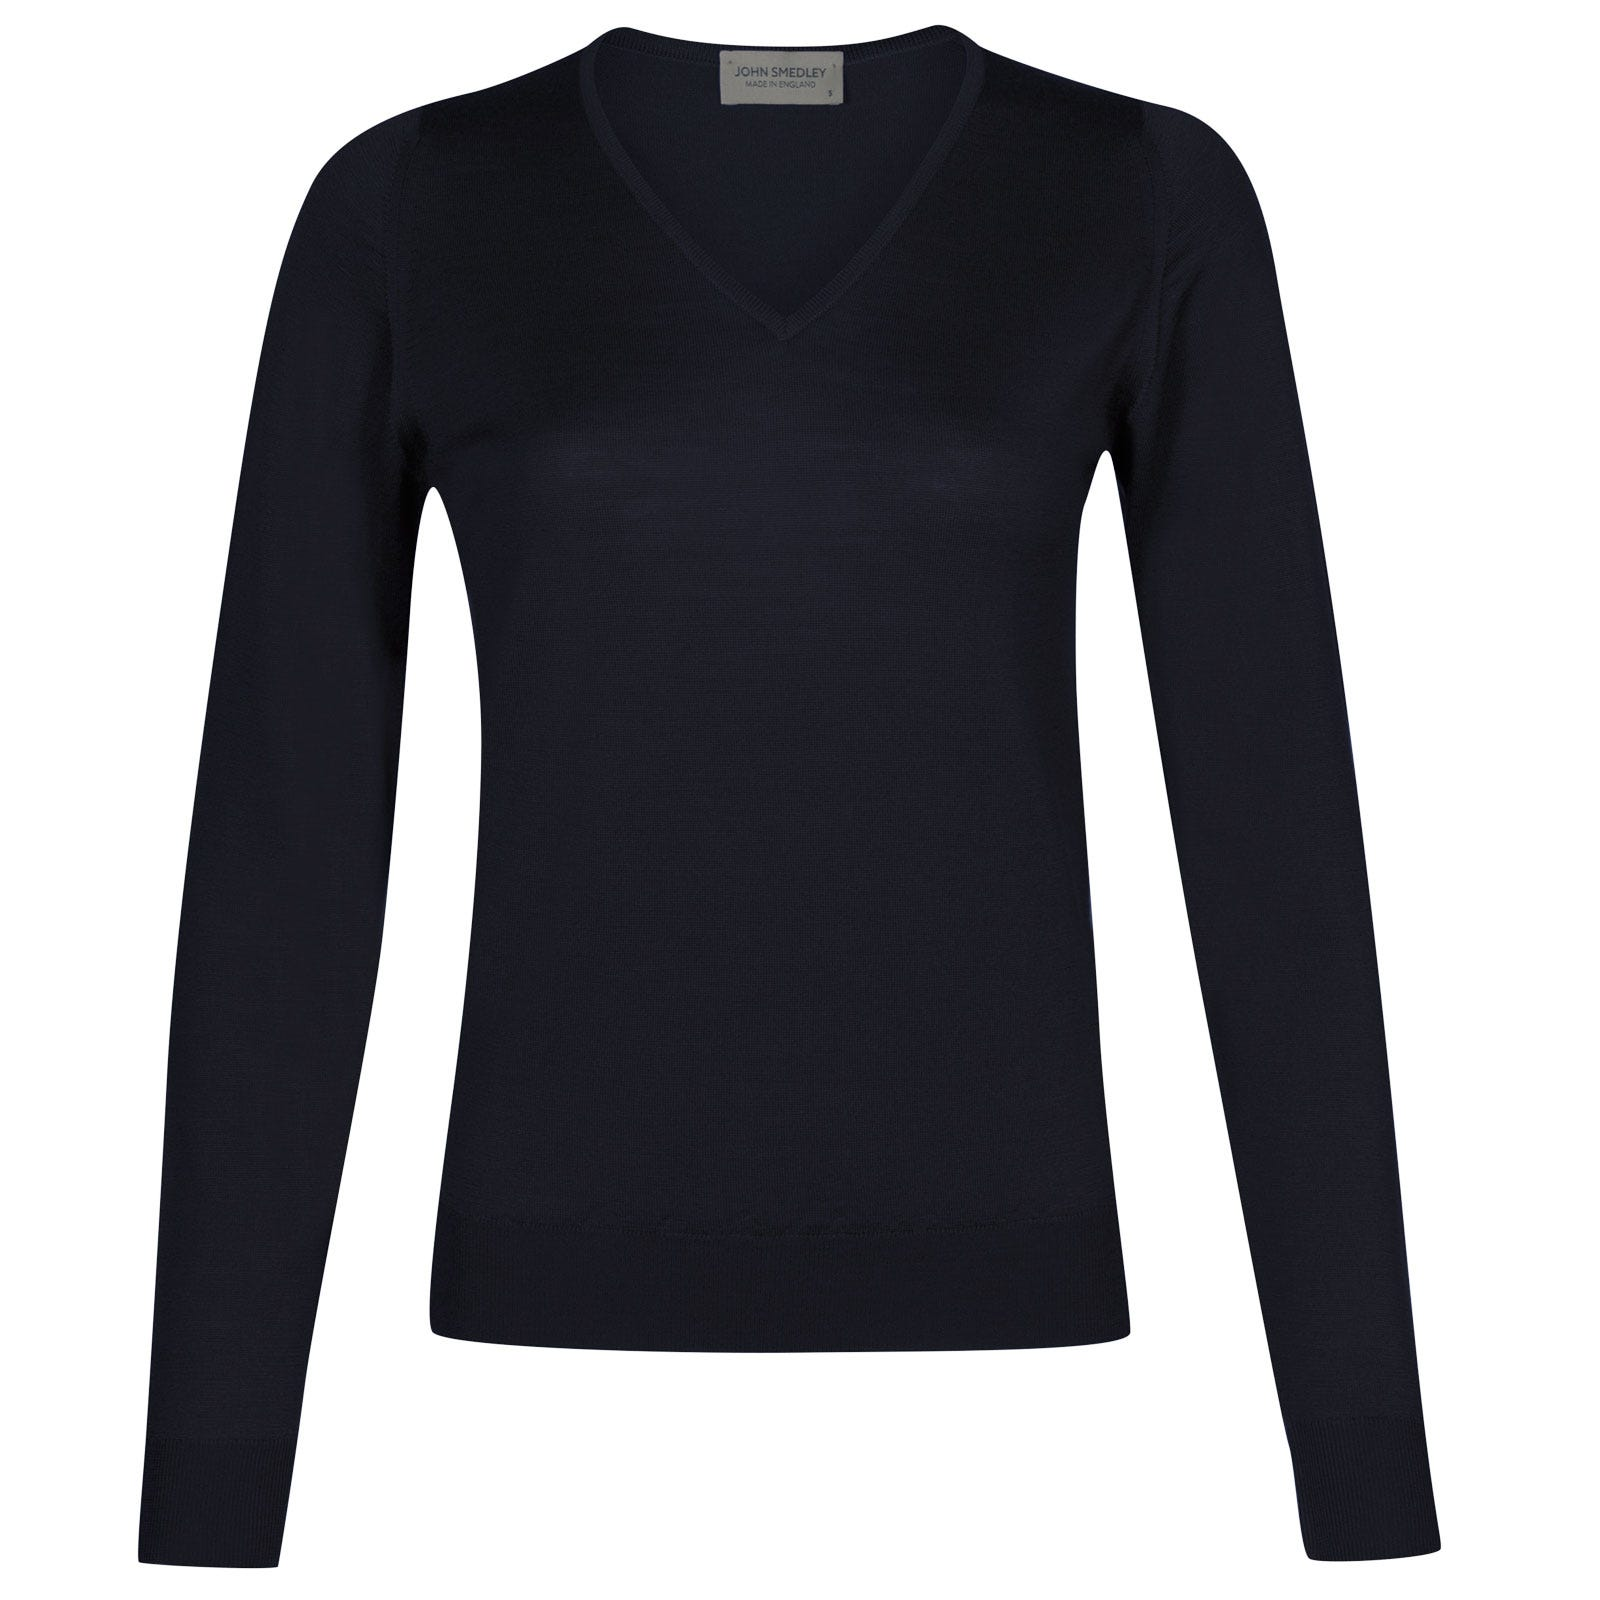 John Smedley manarola Merino Wool Sweater in Midnight-L